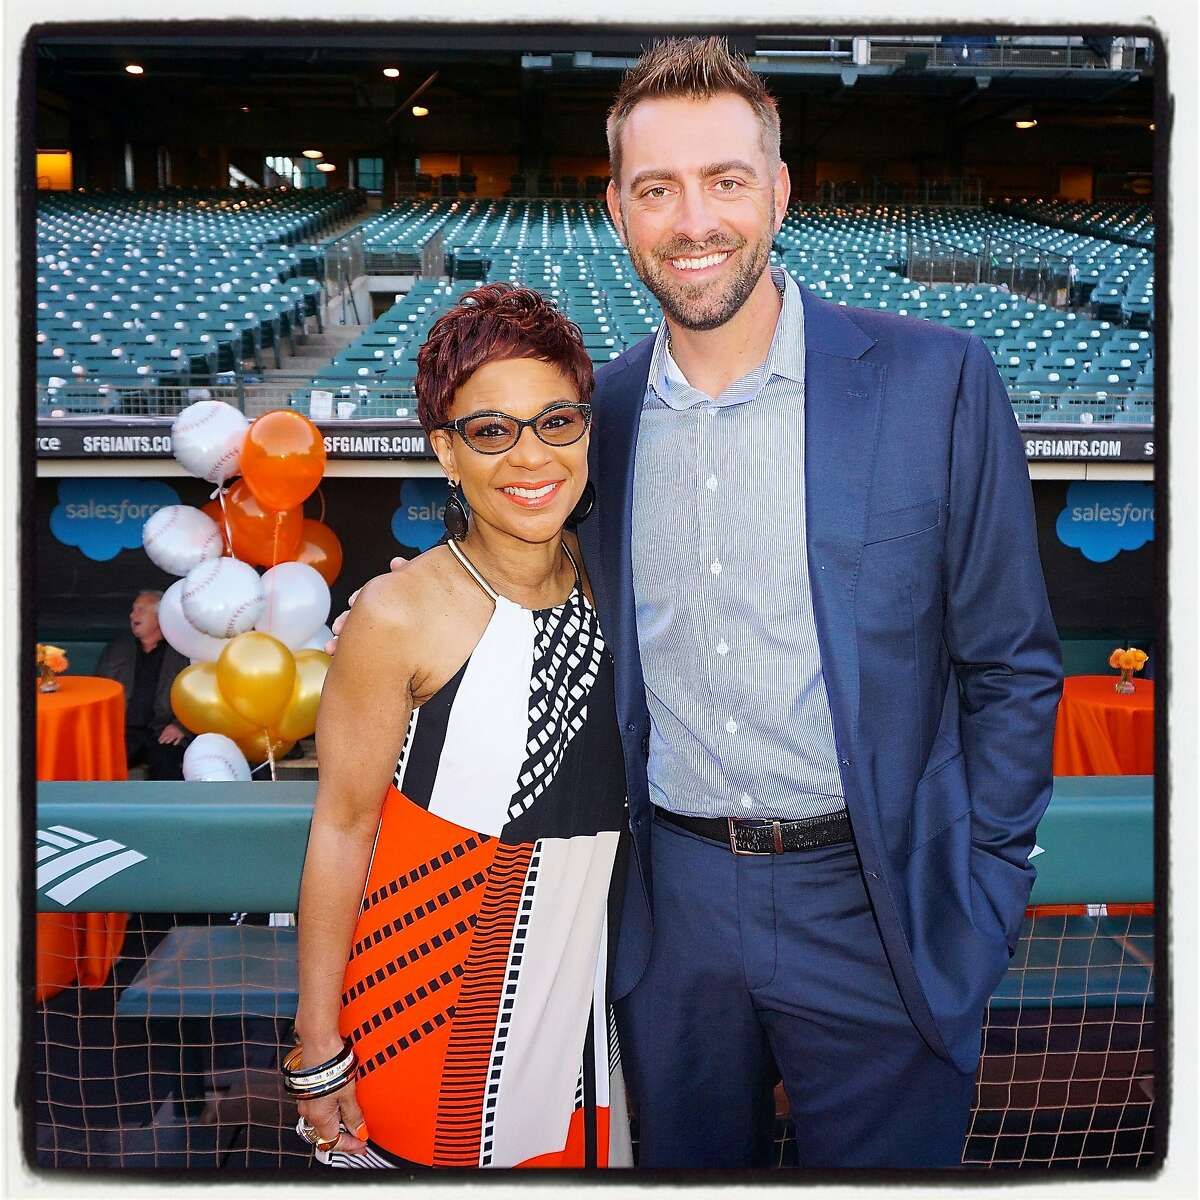 SF Giants announcer Renel Brooks-Moon and former Giants pitcher Jeremy Affeldt at AT&T ballpark to assist their good friend Buster Posey raise money for pediatric cancer research. Sept 2016.